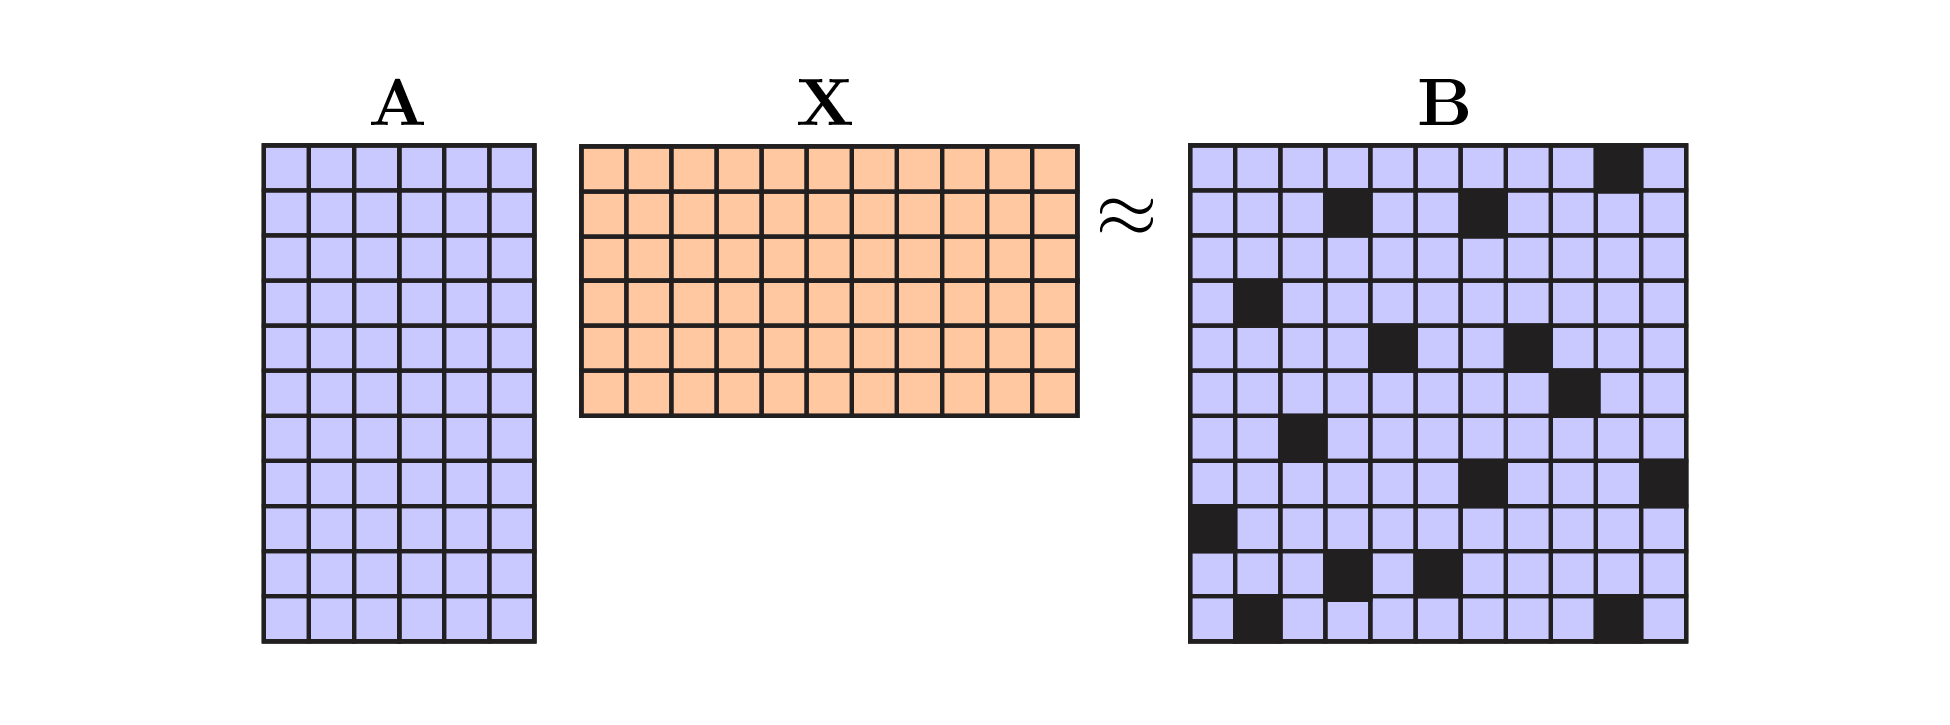 Solving Least-Squares Regression with Missing Data · Its Neuronal